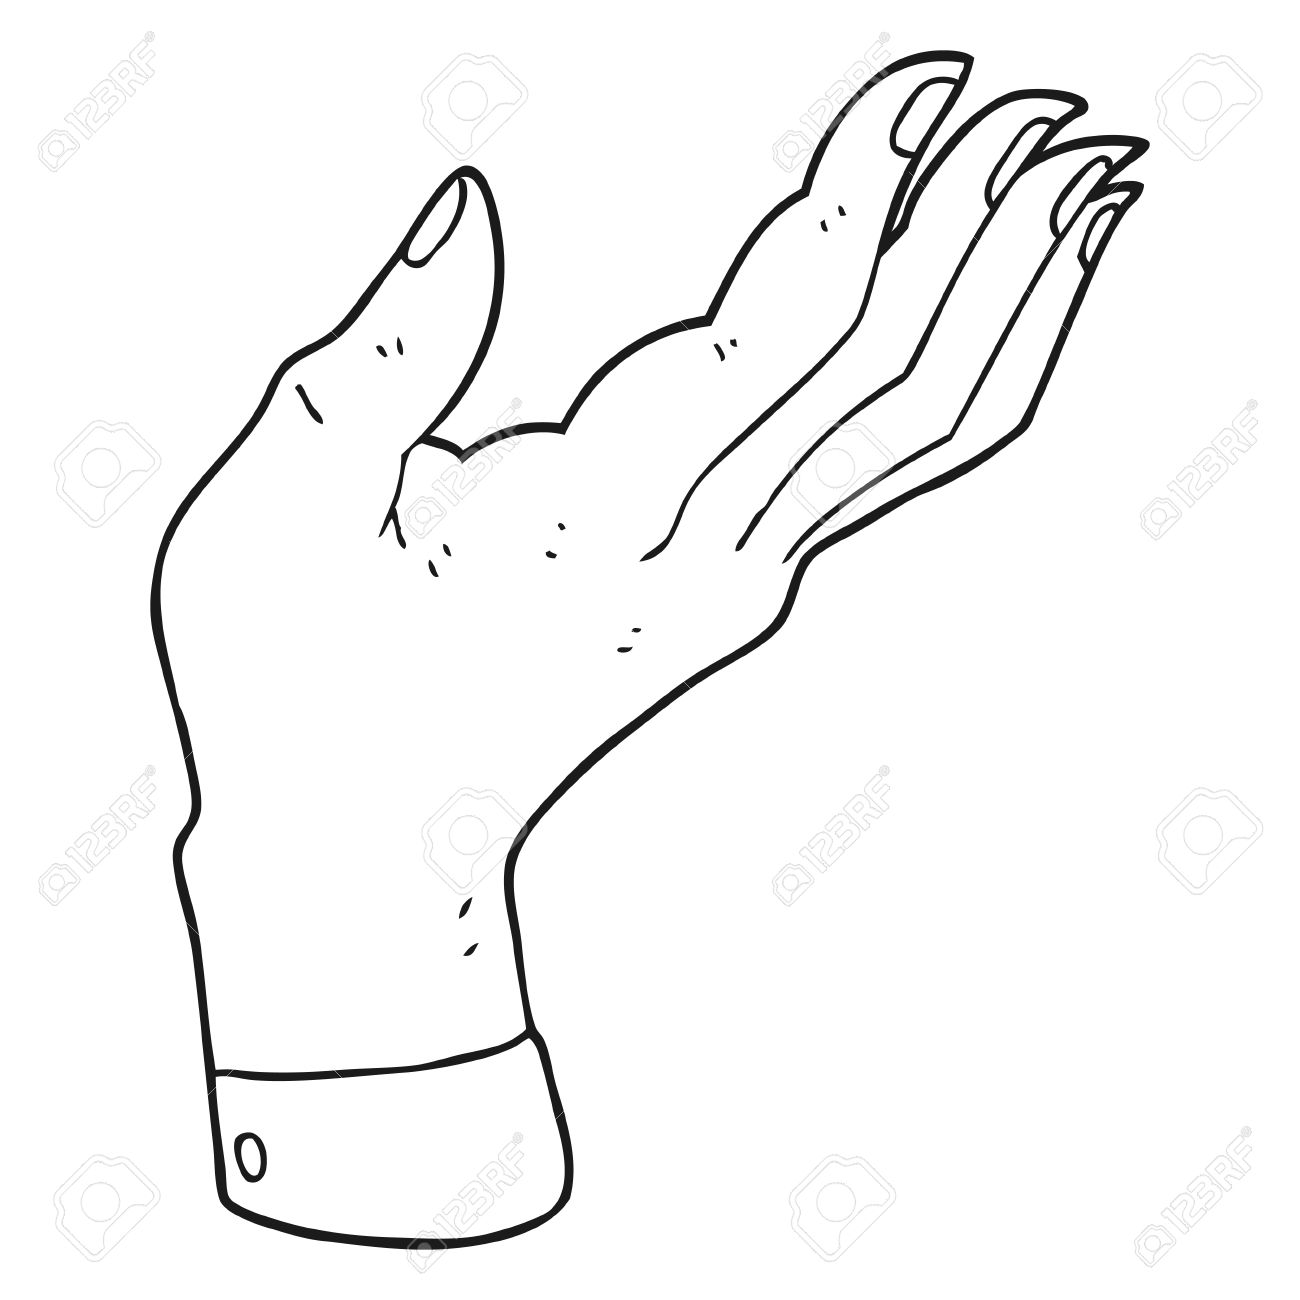 1300x1300 Freehand Drawn Black And White Cartoon Open Hand Raised Palm